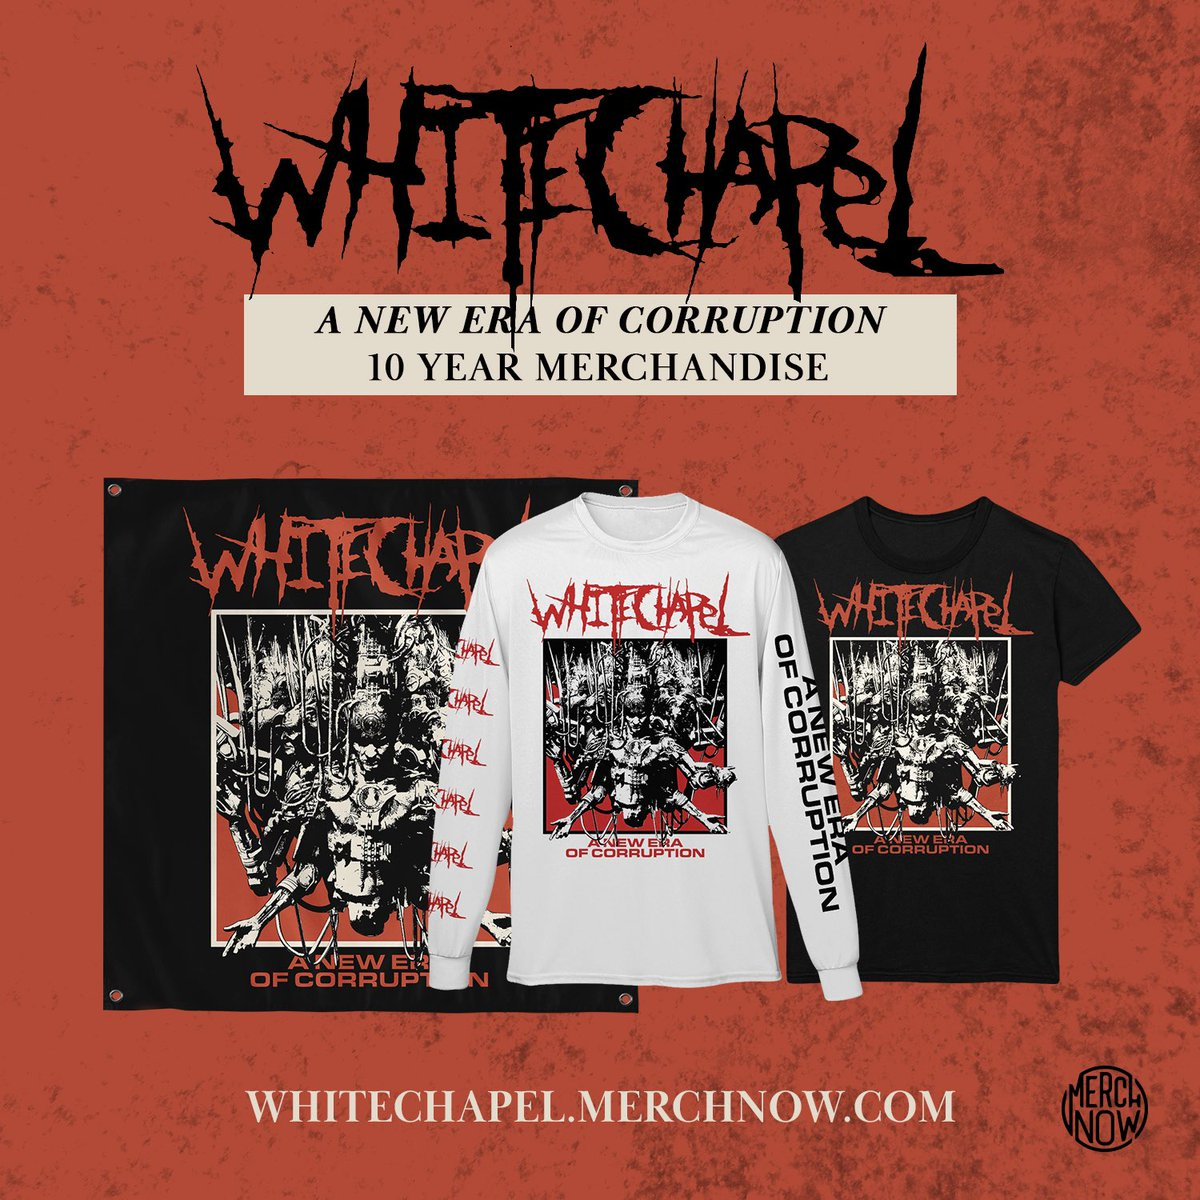 """On this day 10 years ago we released our third full length album """"A New Era of Corruption"""".  It was a career defining record for us and in celebration we have released a line of anniversary merch that is available now. https://t.co/qsI0kZuE0b https://t.co/pRICs7ULc5"""